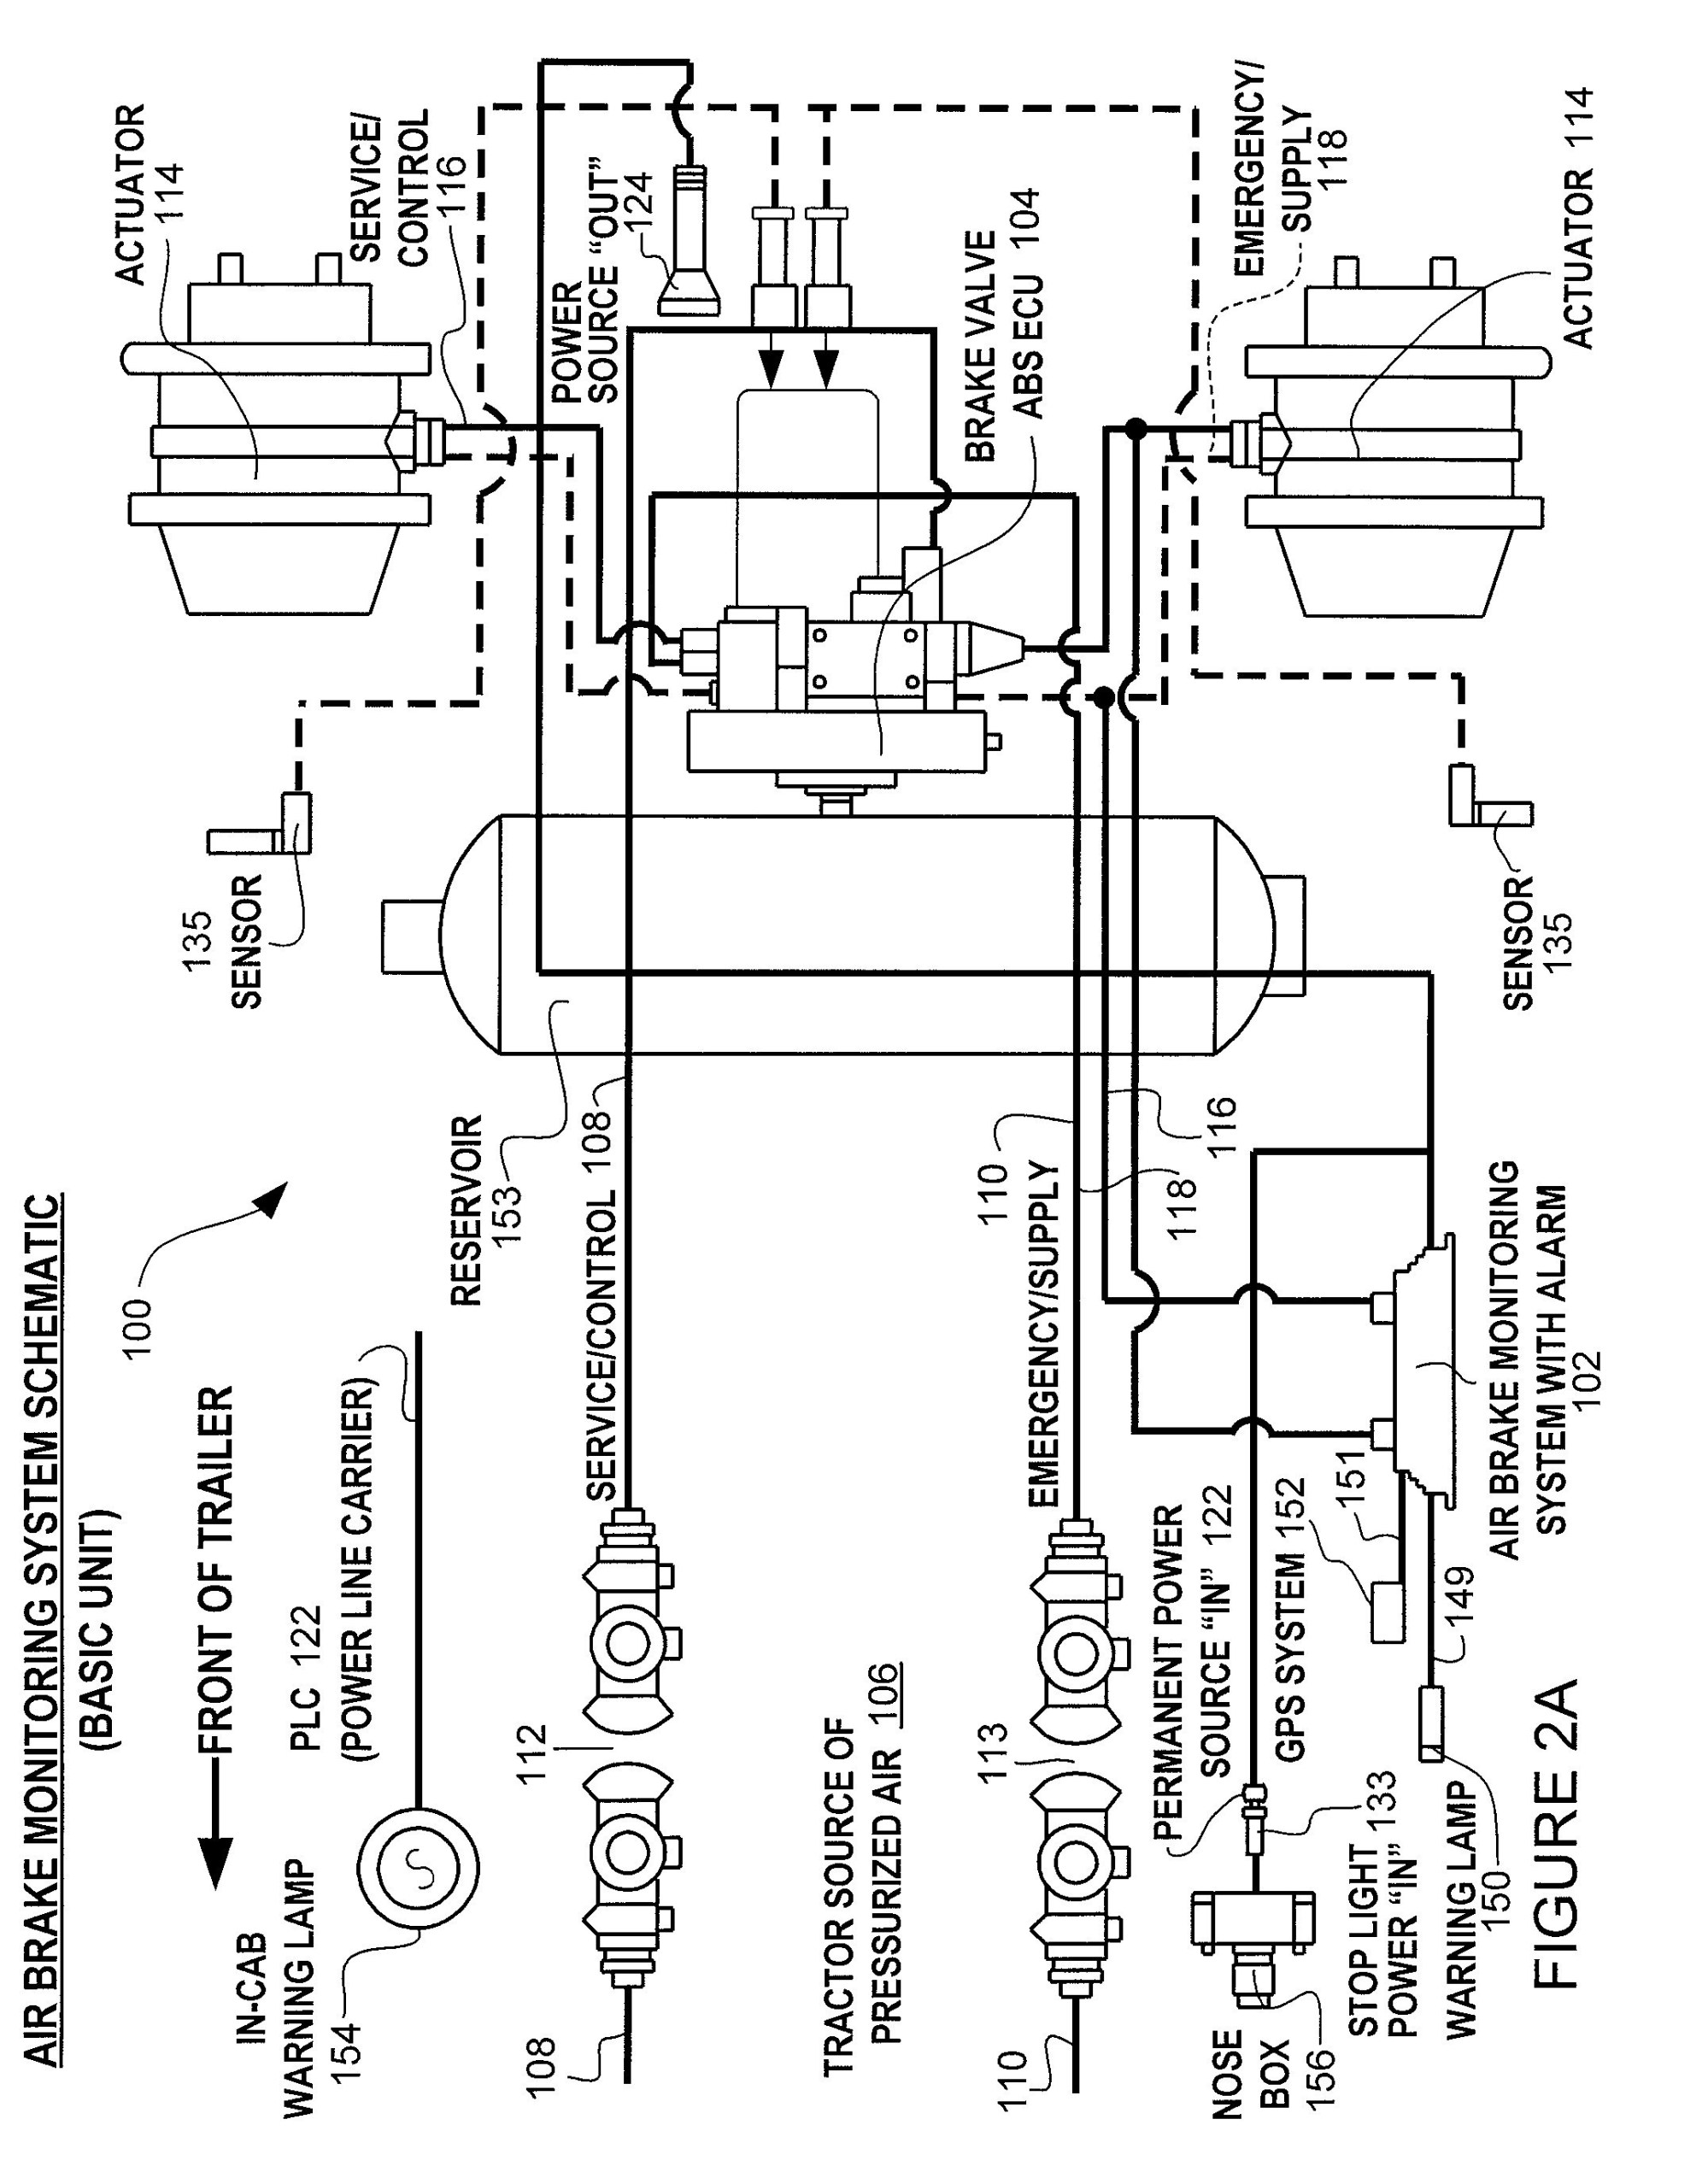 hight resolution of wabco abs wiring diagram trailer blog wiring diagram wabco abs wiring diagram wiring diagram dat wabco